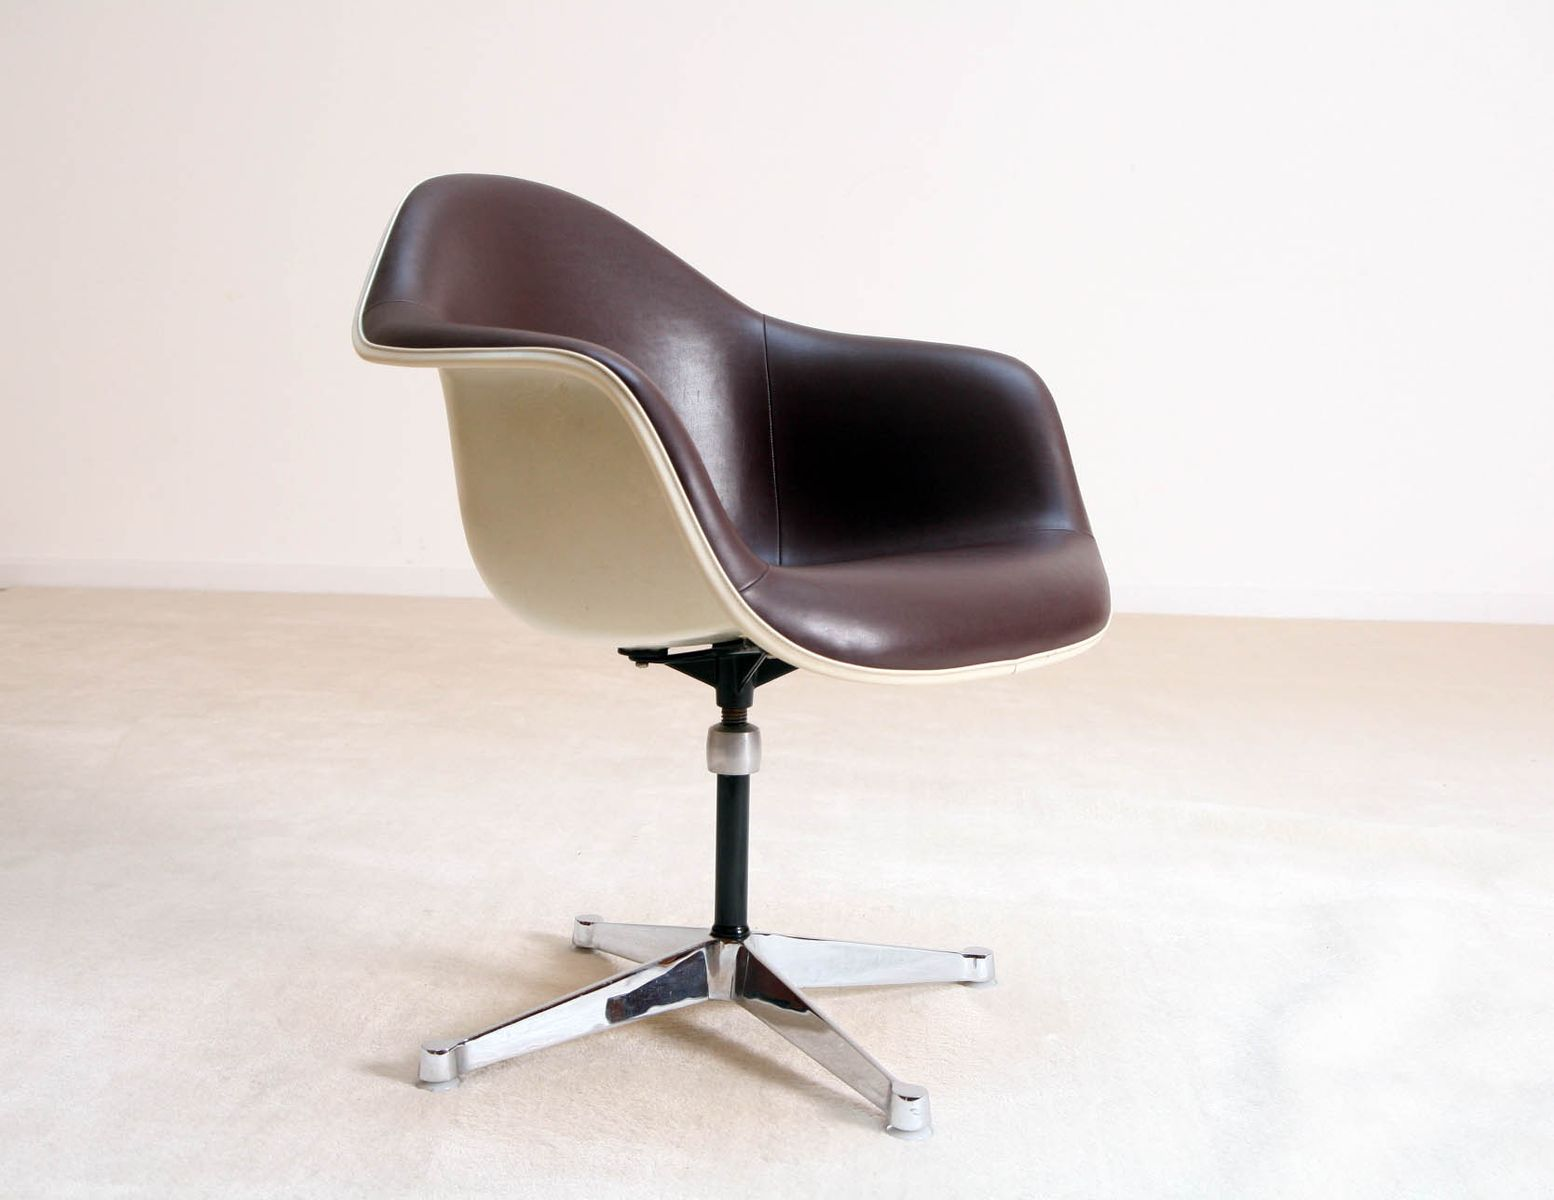 Fiberglass Chair by Charles and Ray Eames for Herman